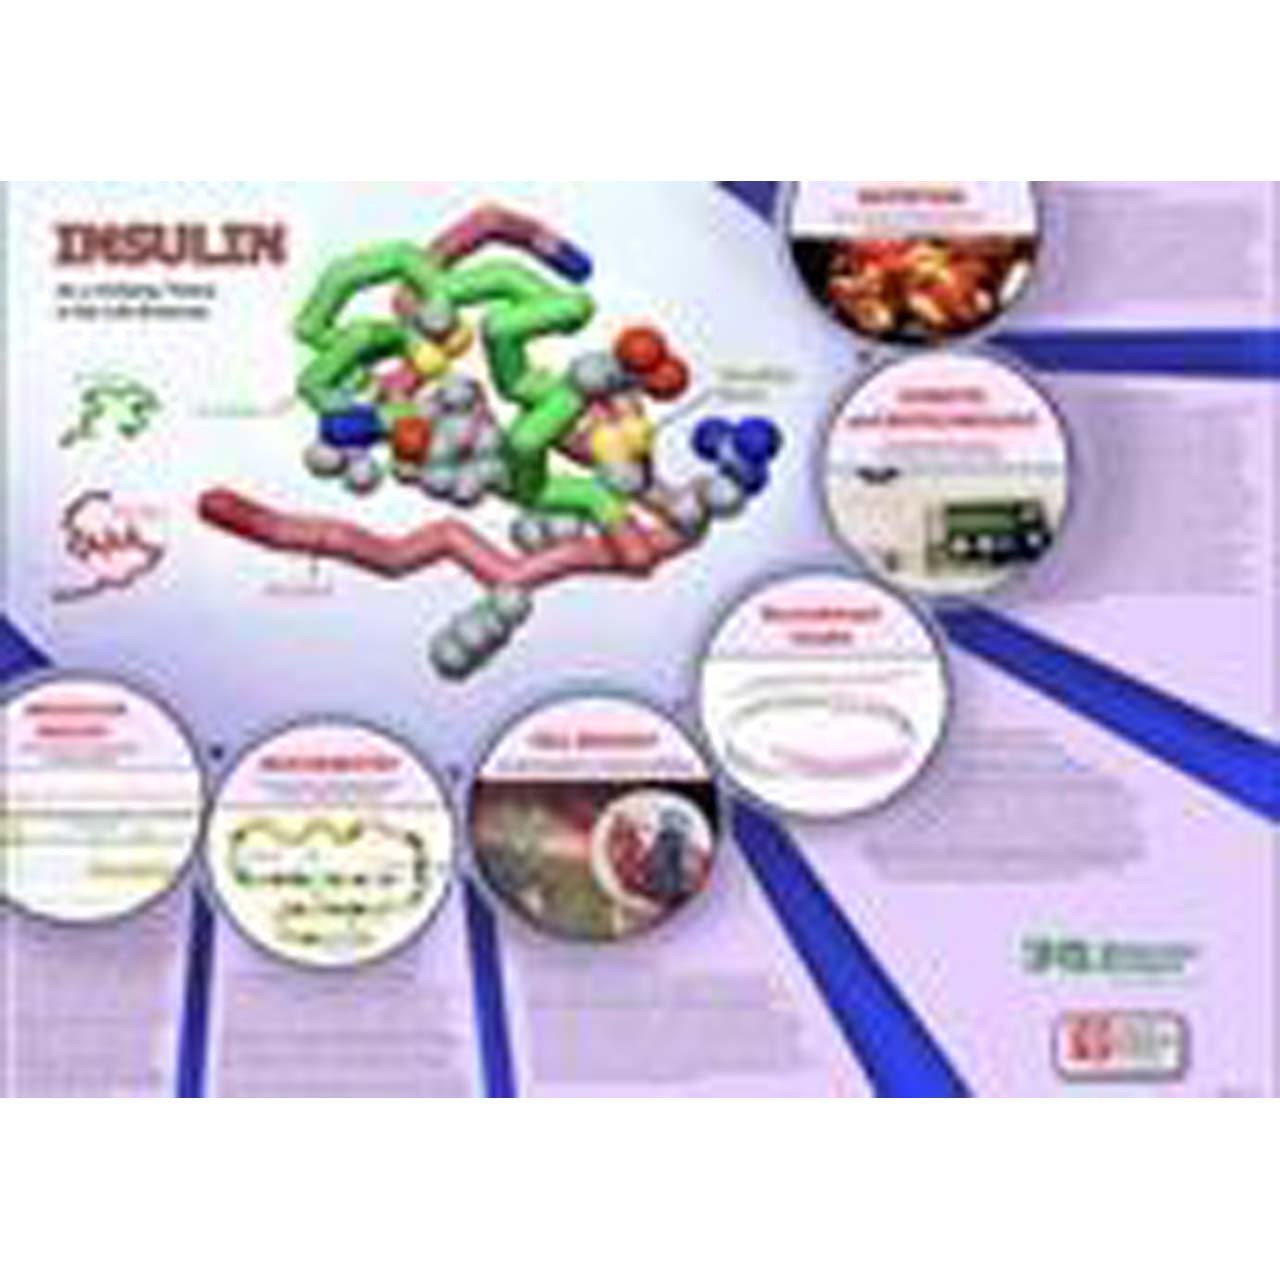 M1.35 - Insulin mRNA to Protein Kit. 3 group set.